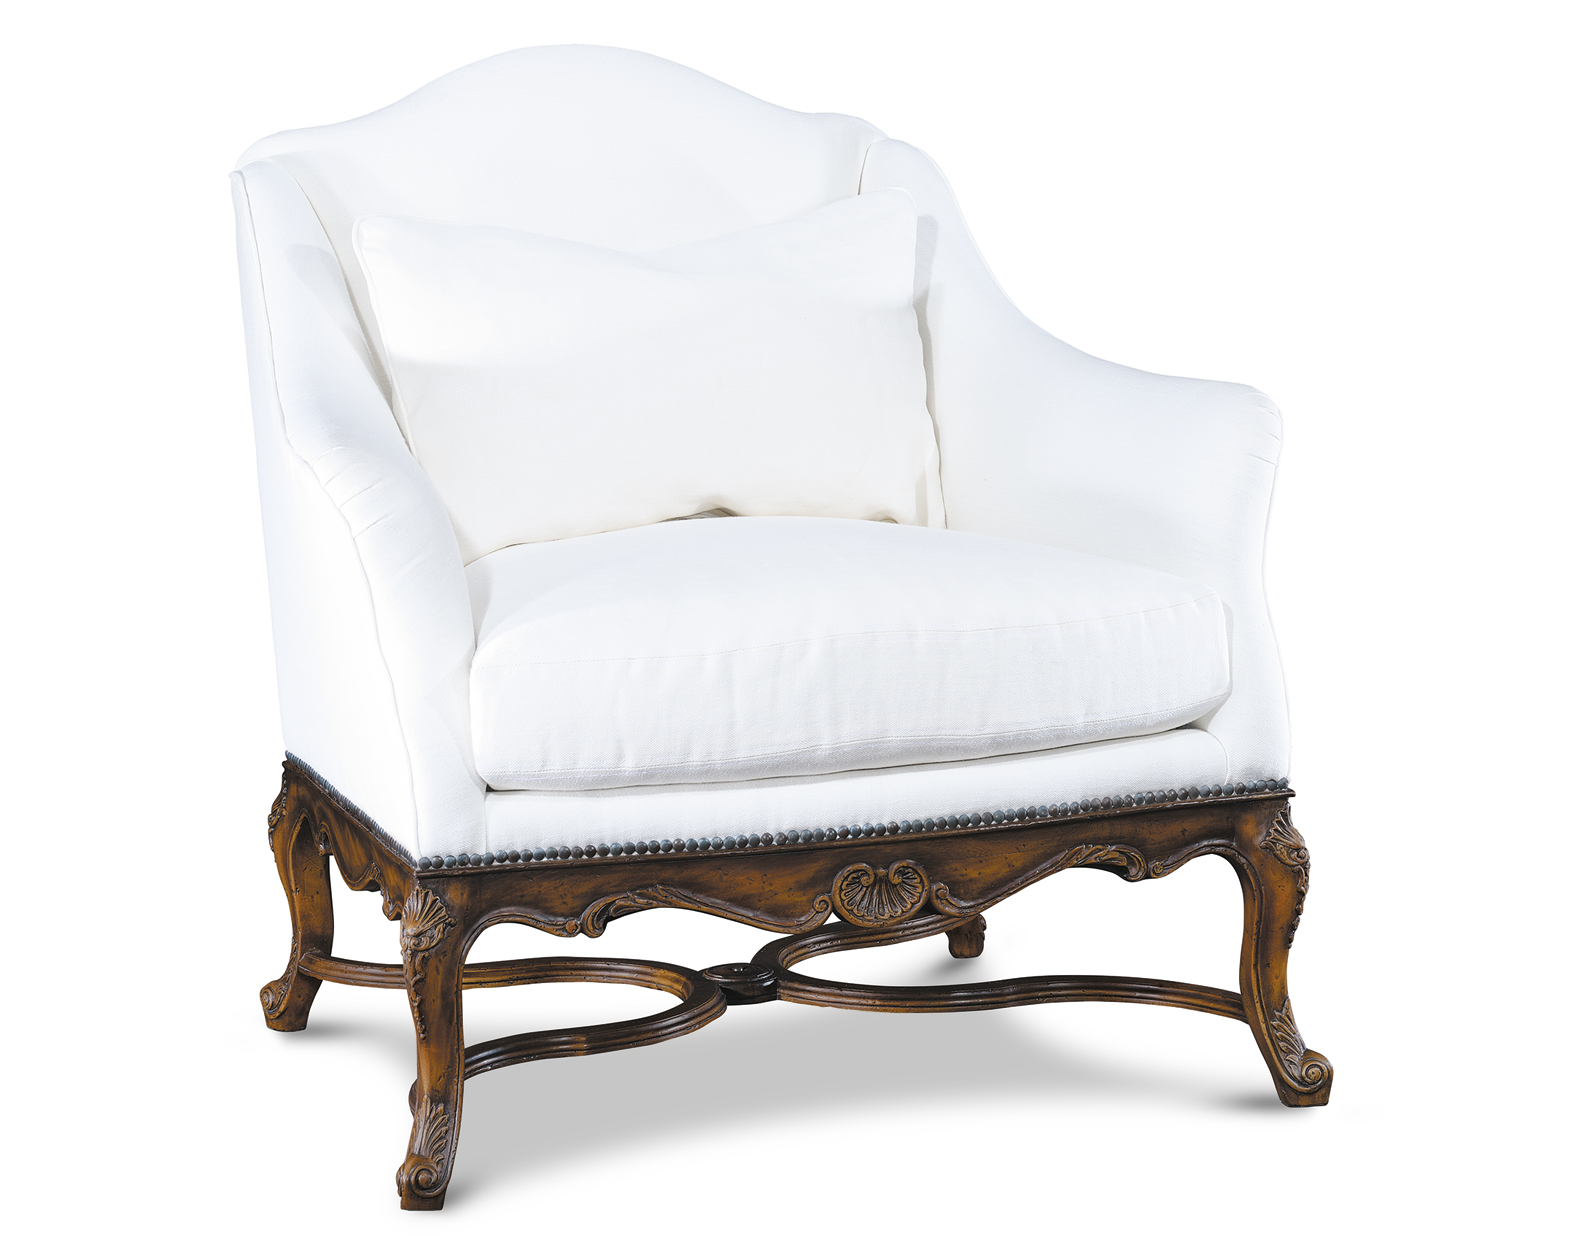 ST. GERMAIN CHAIR